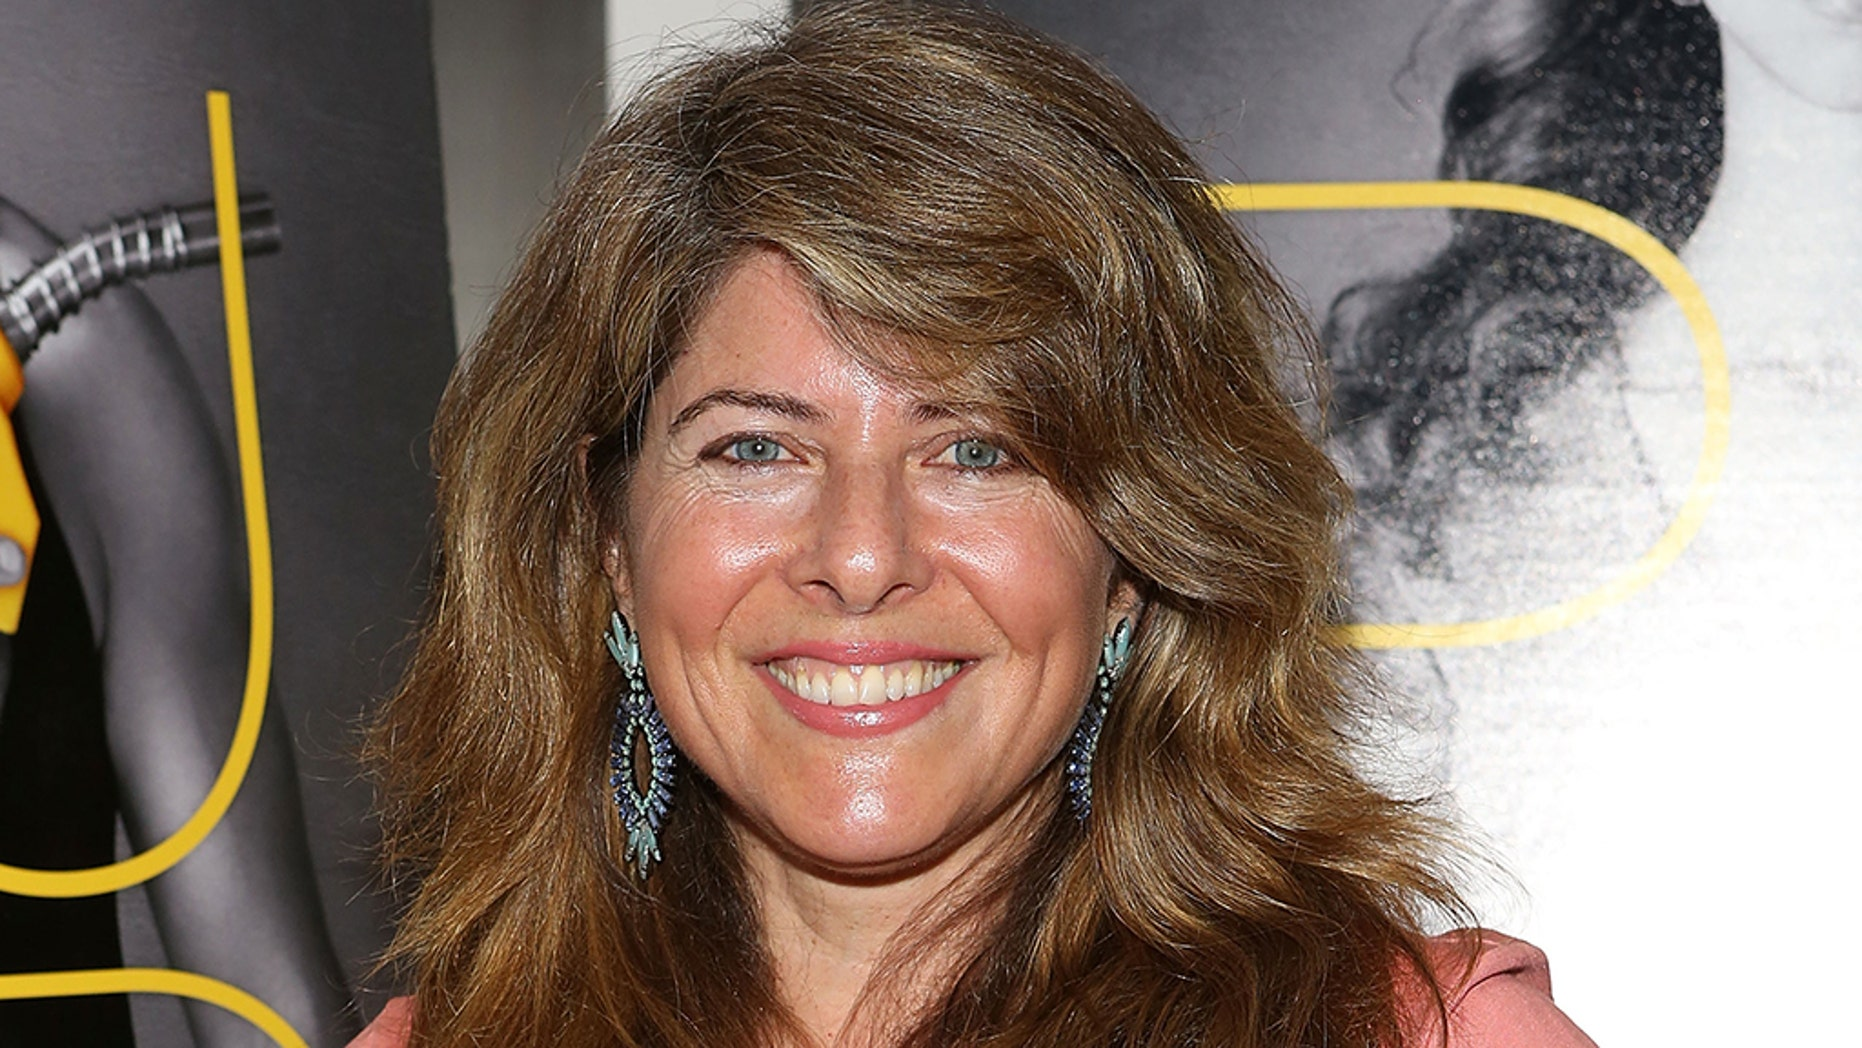 Westlake Legal Group naomi-wolf-getty Feminist author Naomi Wolf's new book canceled after accuracy questioned Robert Gearty fox-news/world/religion/controversies fox news fnc/us fnc article 10e64bd9-d570-57e9-b3d7-16ca7b3f67bf